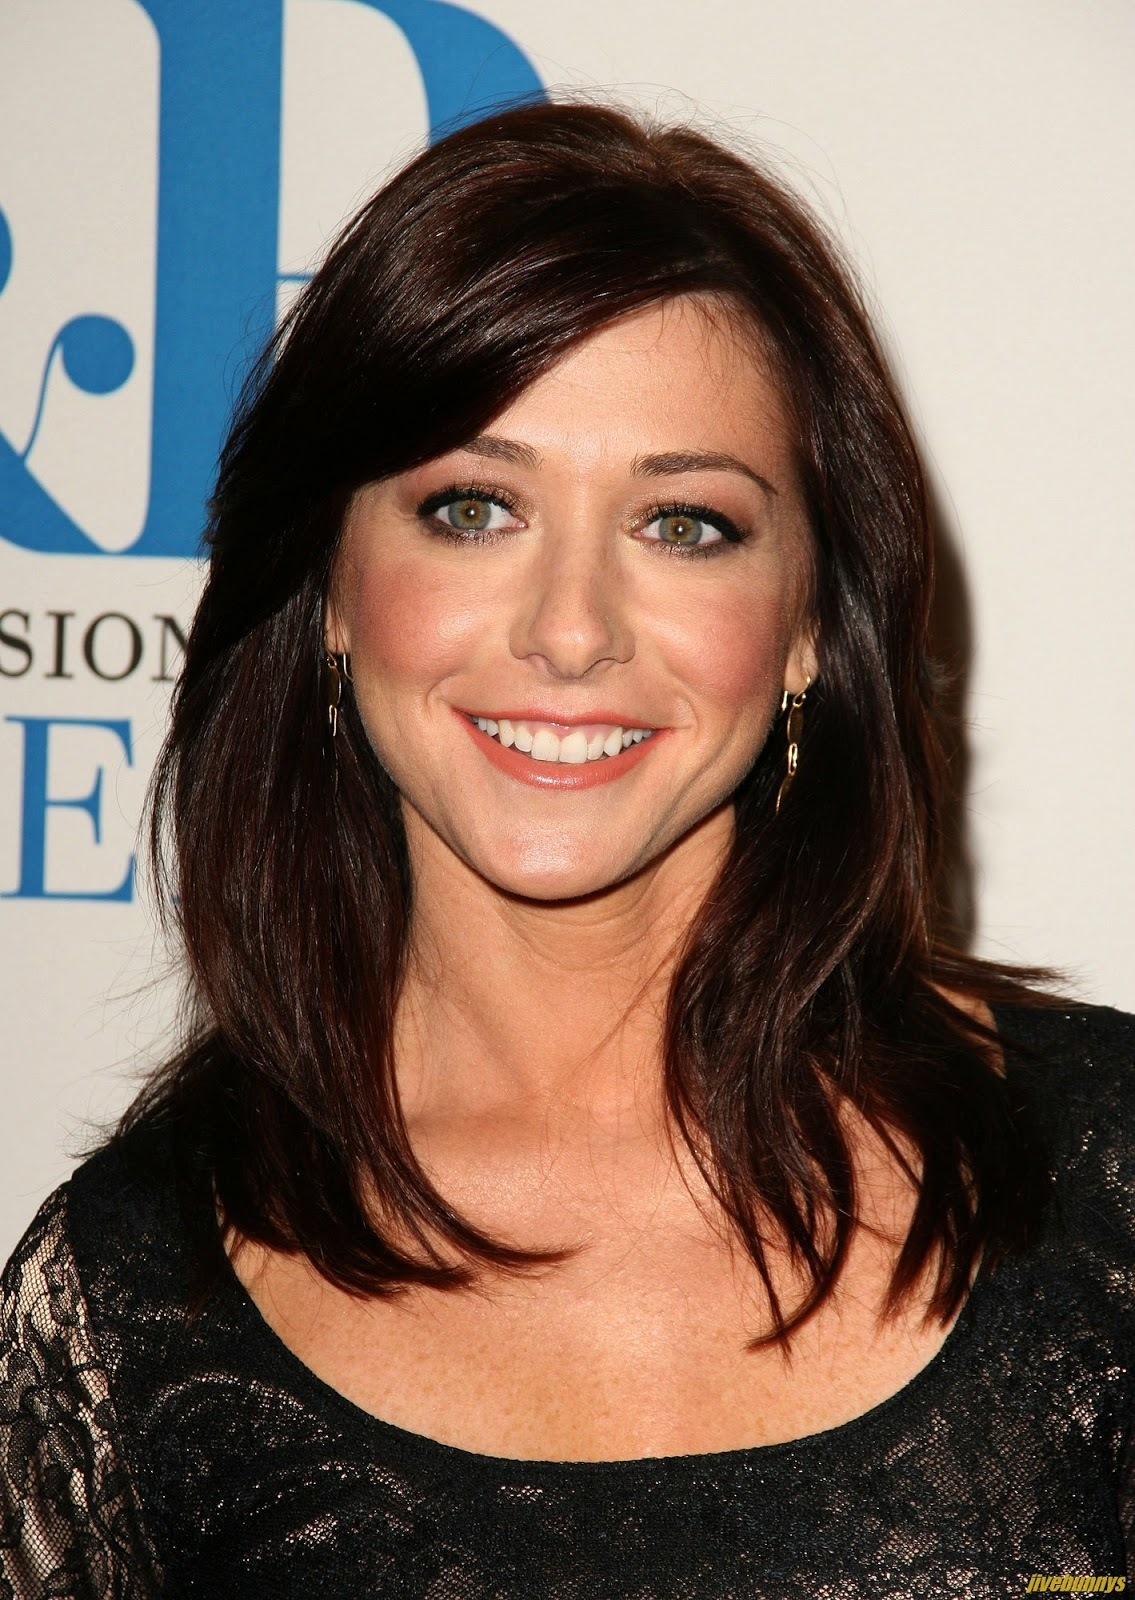 Photos Alyson Hannigan nudes (28 photo), Tits, Leaked, Twitter, cameltoe 2020